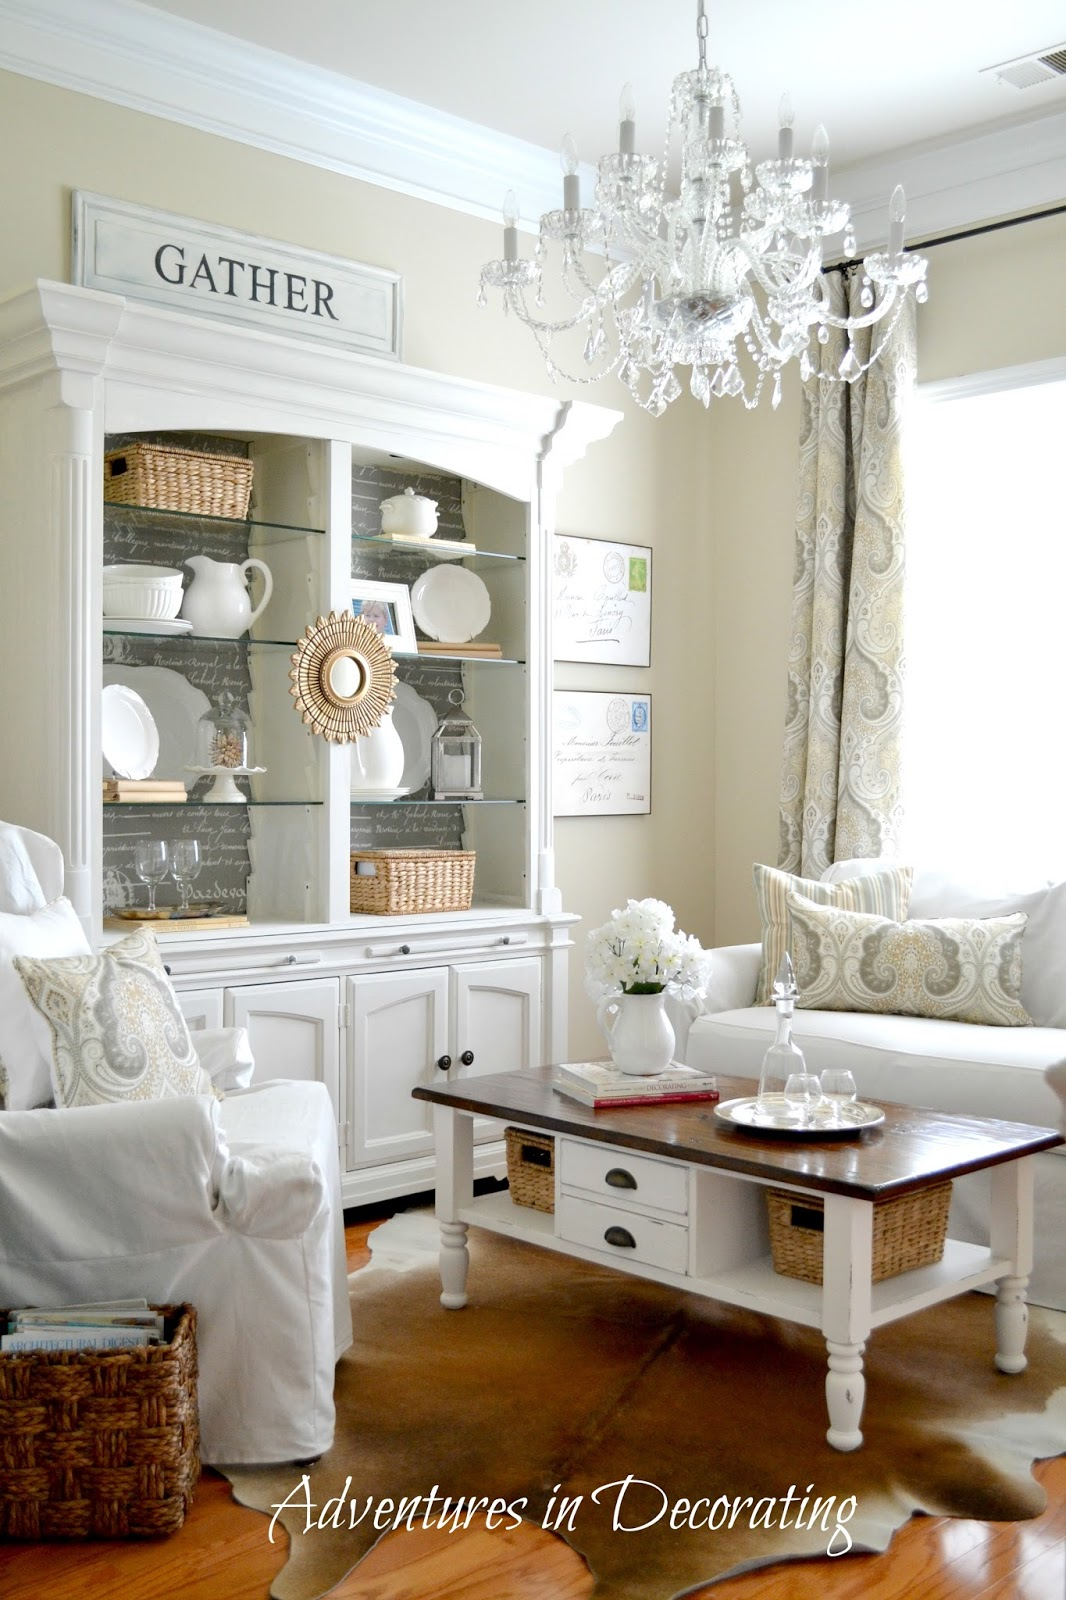 Exelent Repurposed Home Decorating Ideas Mold - Home Decorating ...